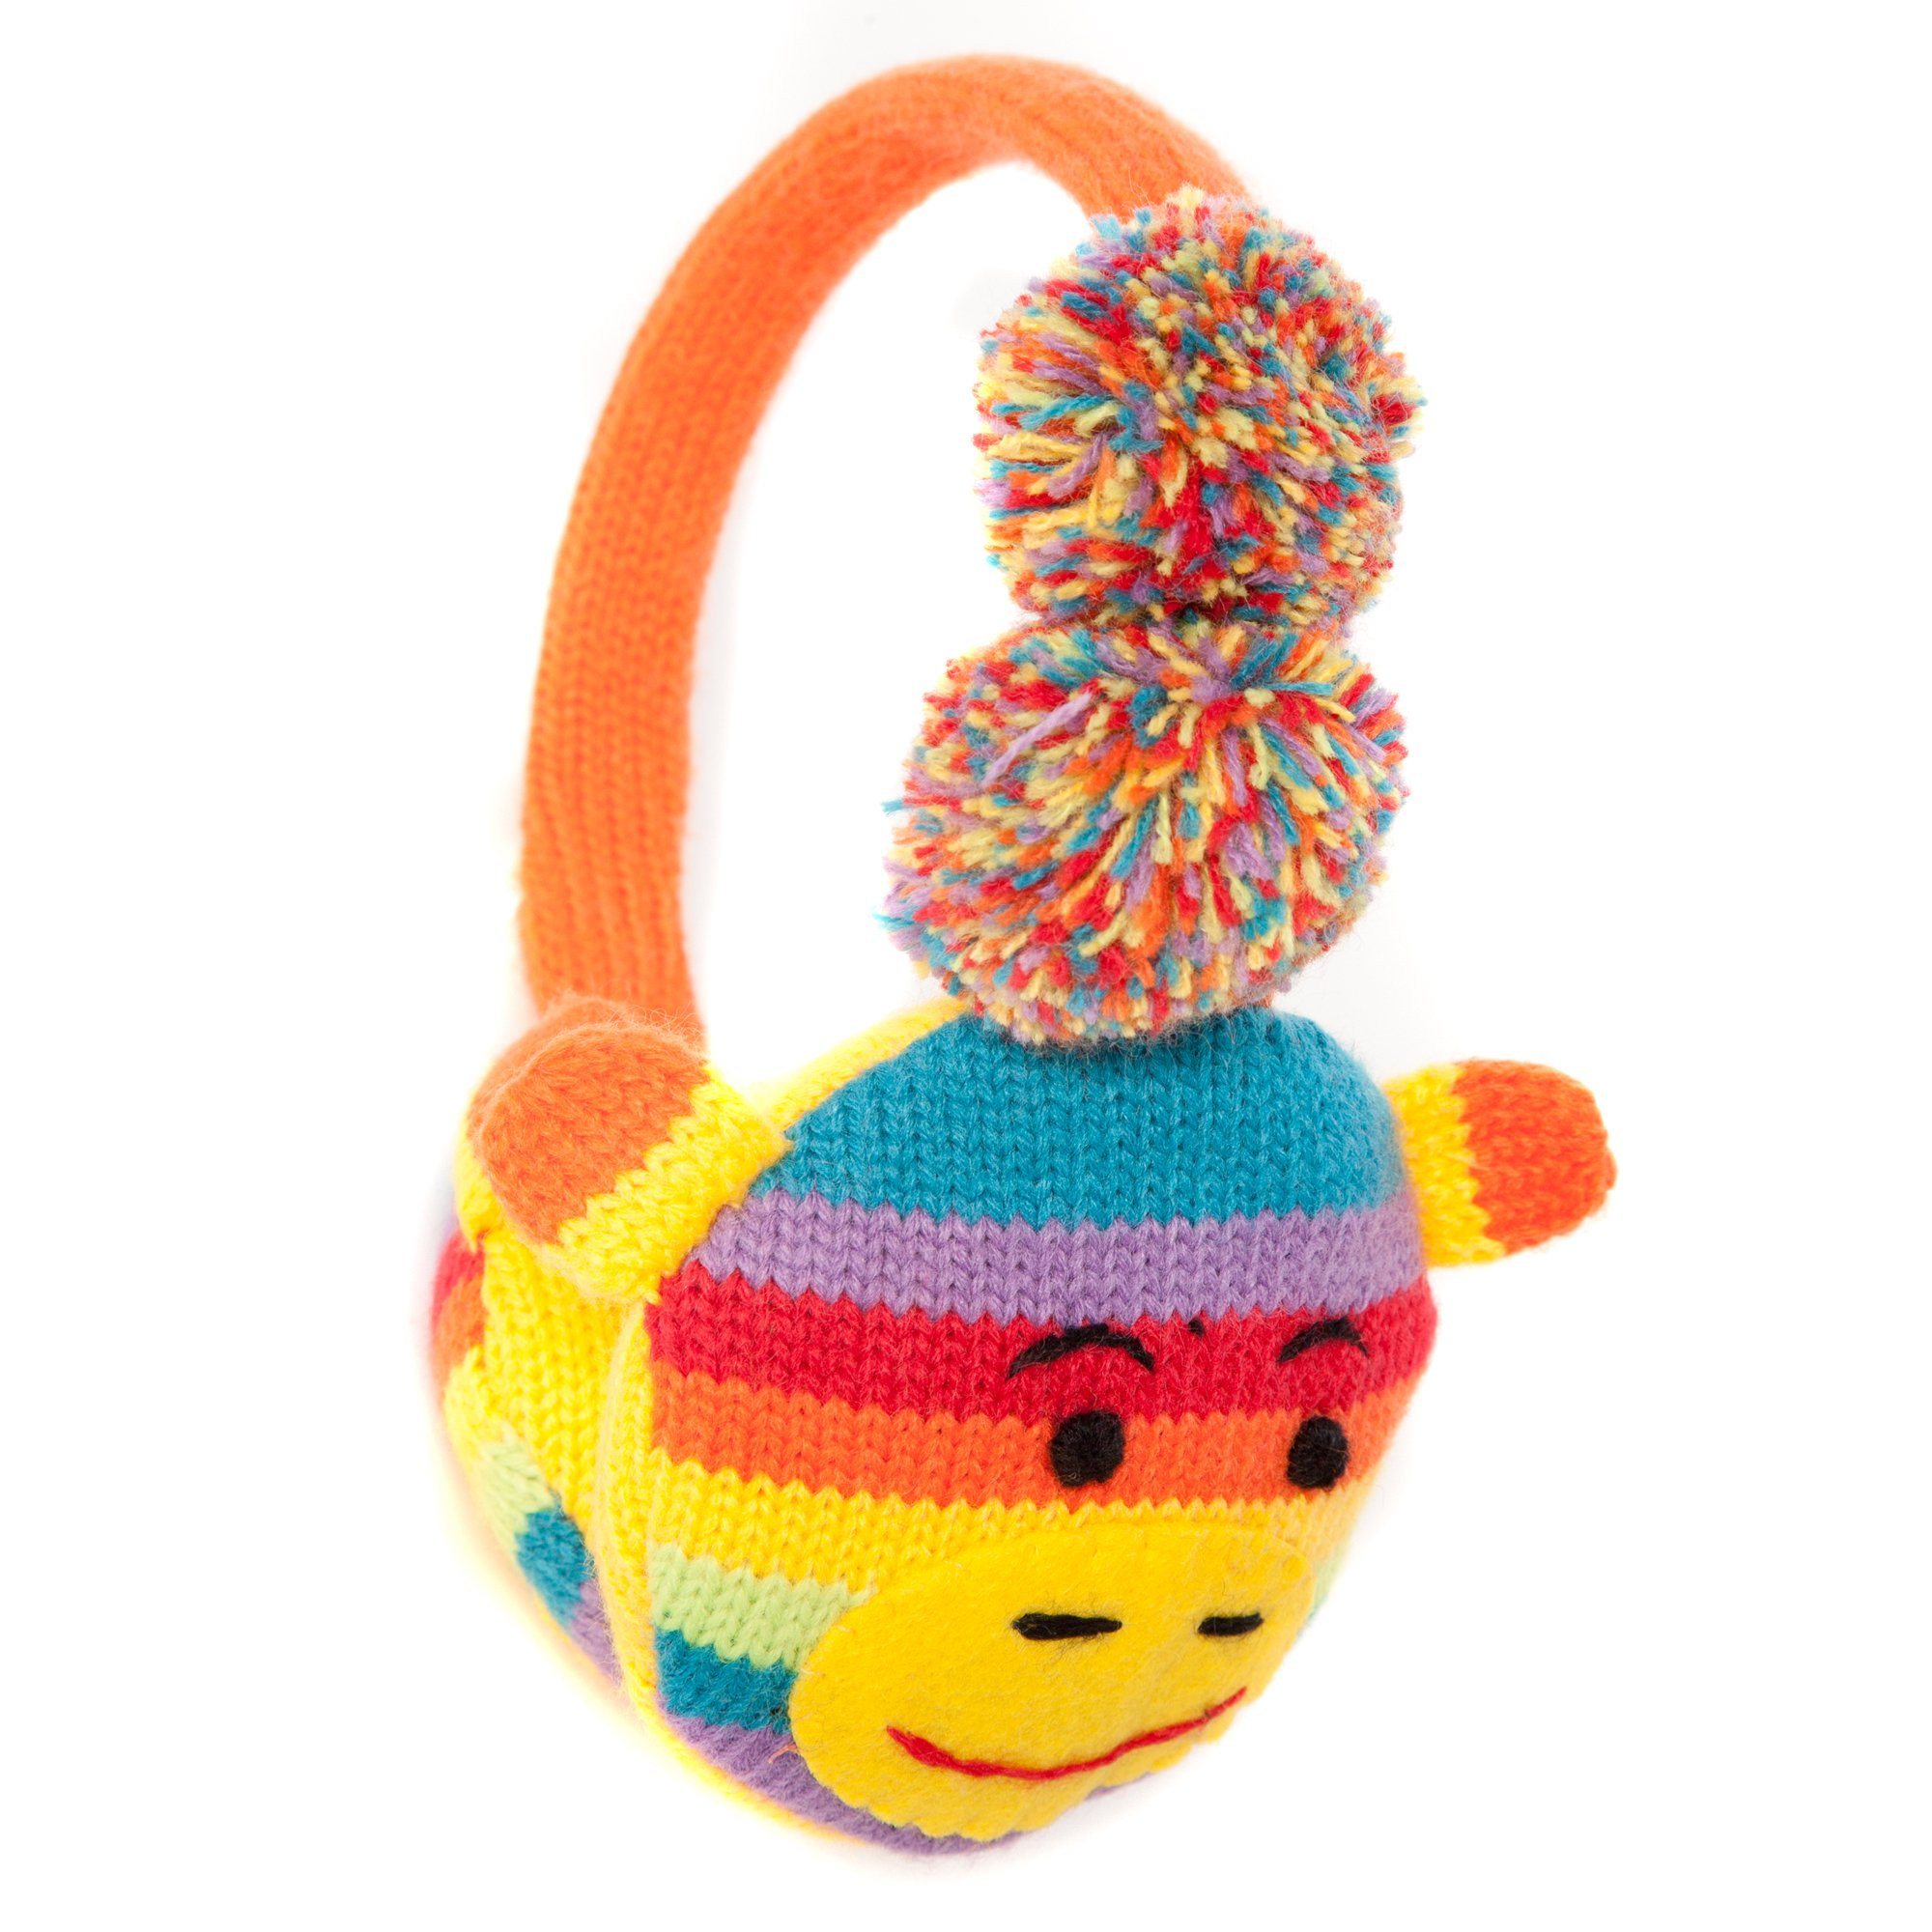 Accessoryo Women's Cute Rainbow Monkey Style Winter Thermal Fashion Earmuffs with pompoms One Size Yellow and Multi